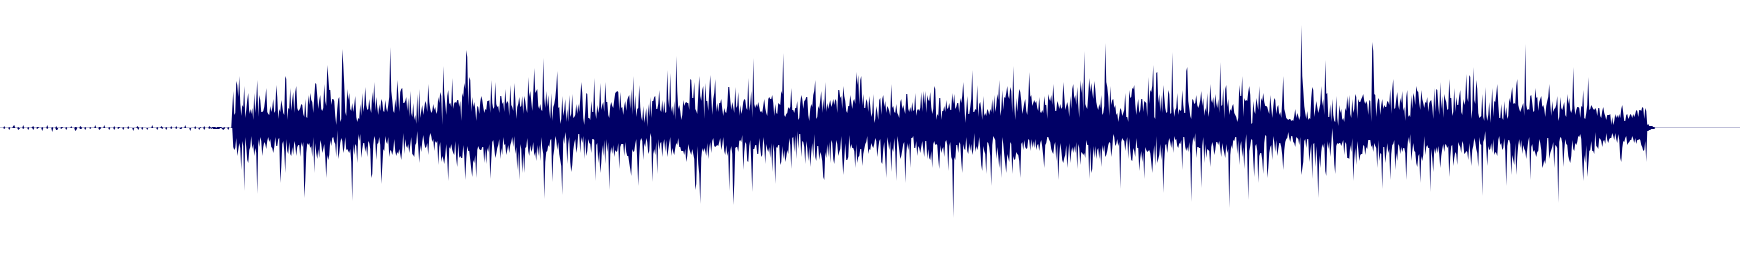 waveform of track #100075